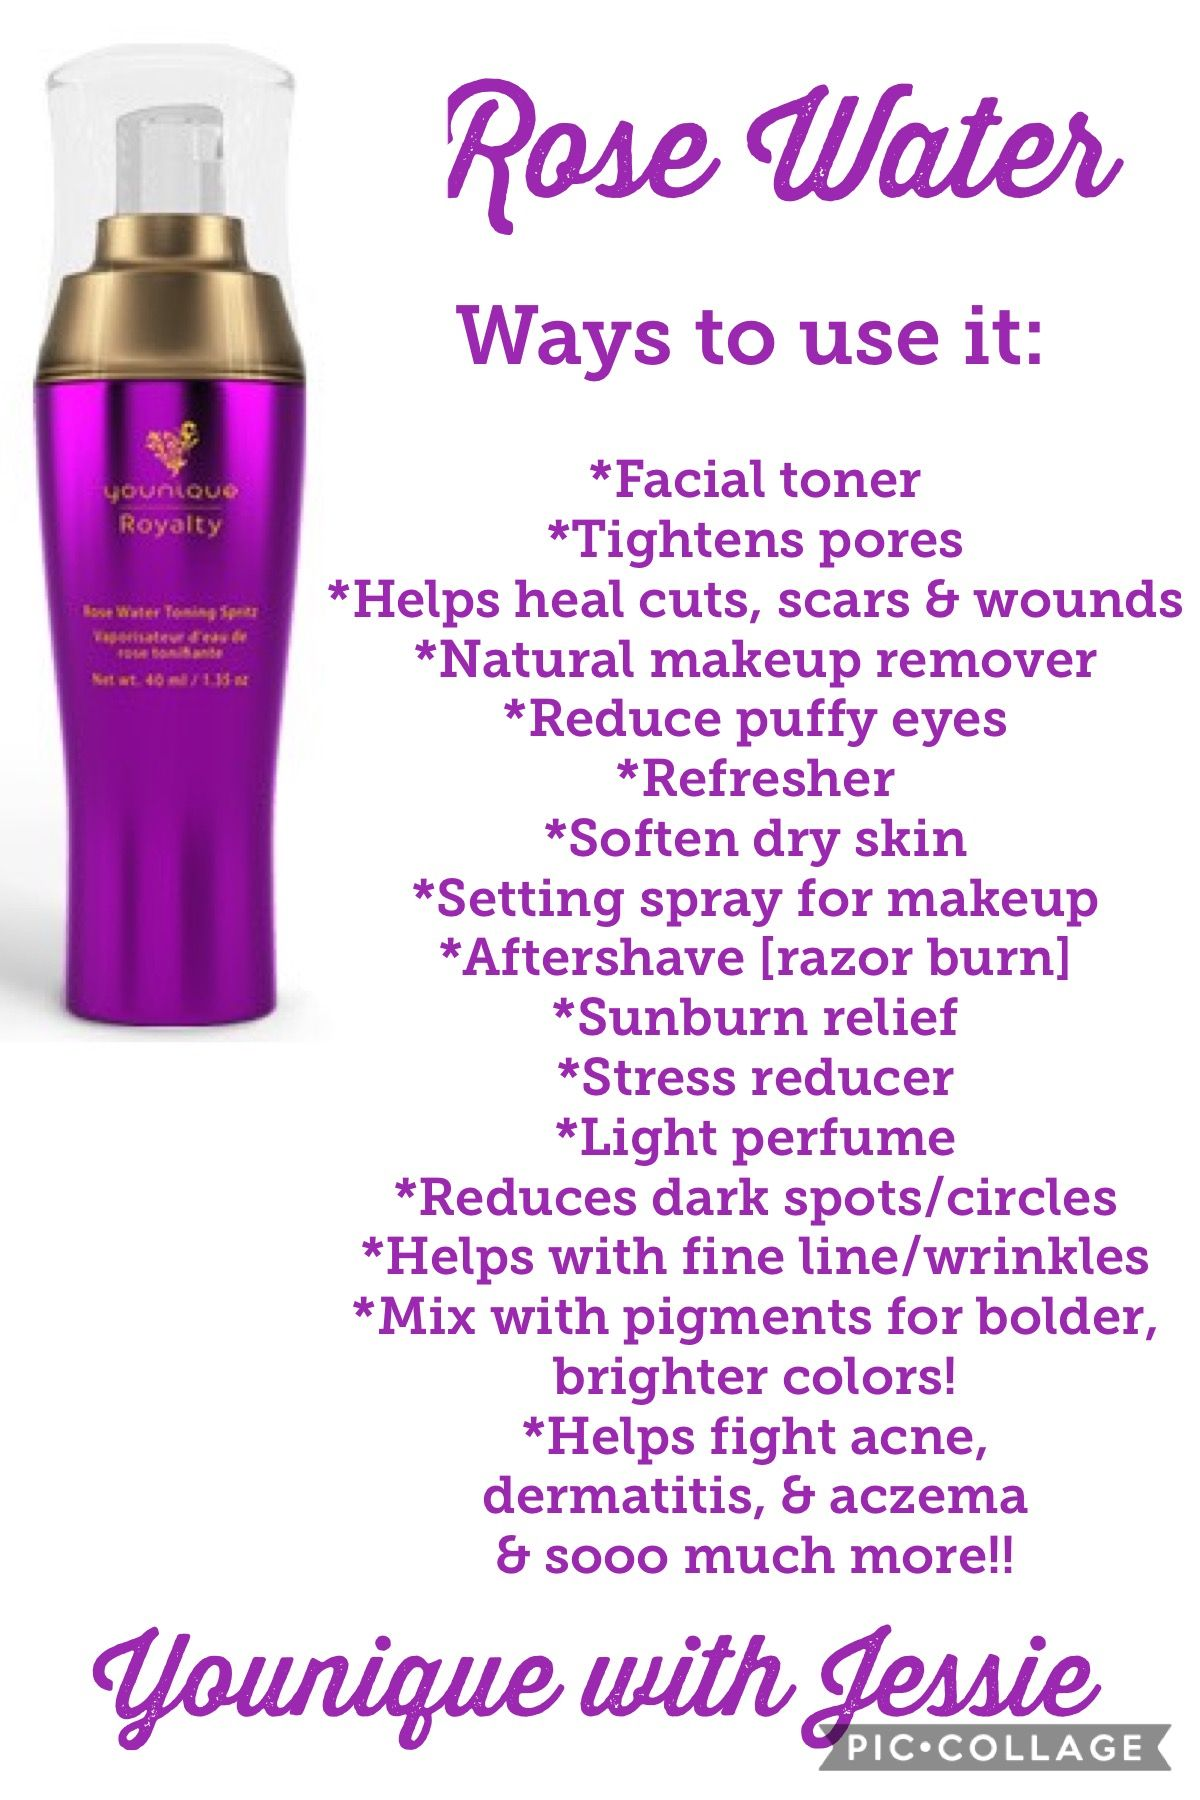 Pin by Jessie Hicks on Younique Skin Care Younique skin